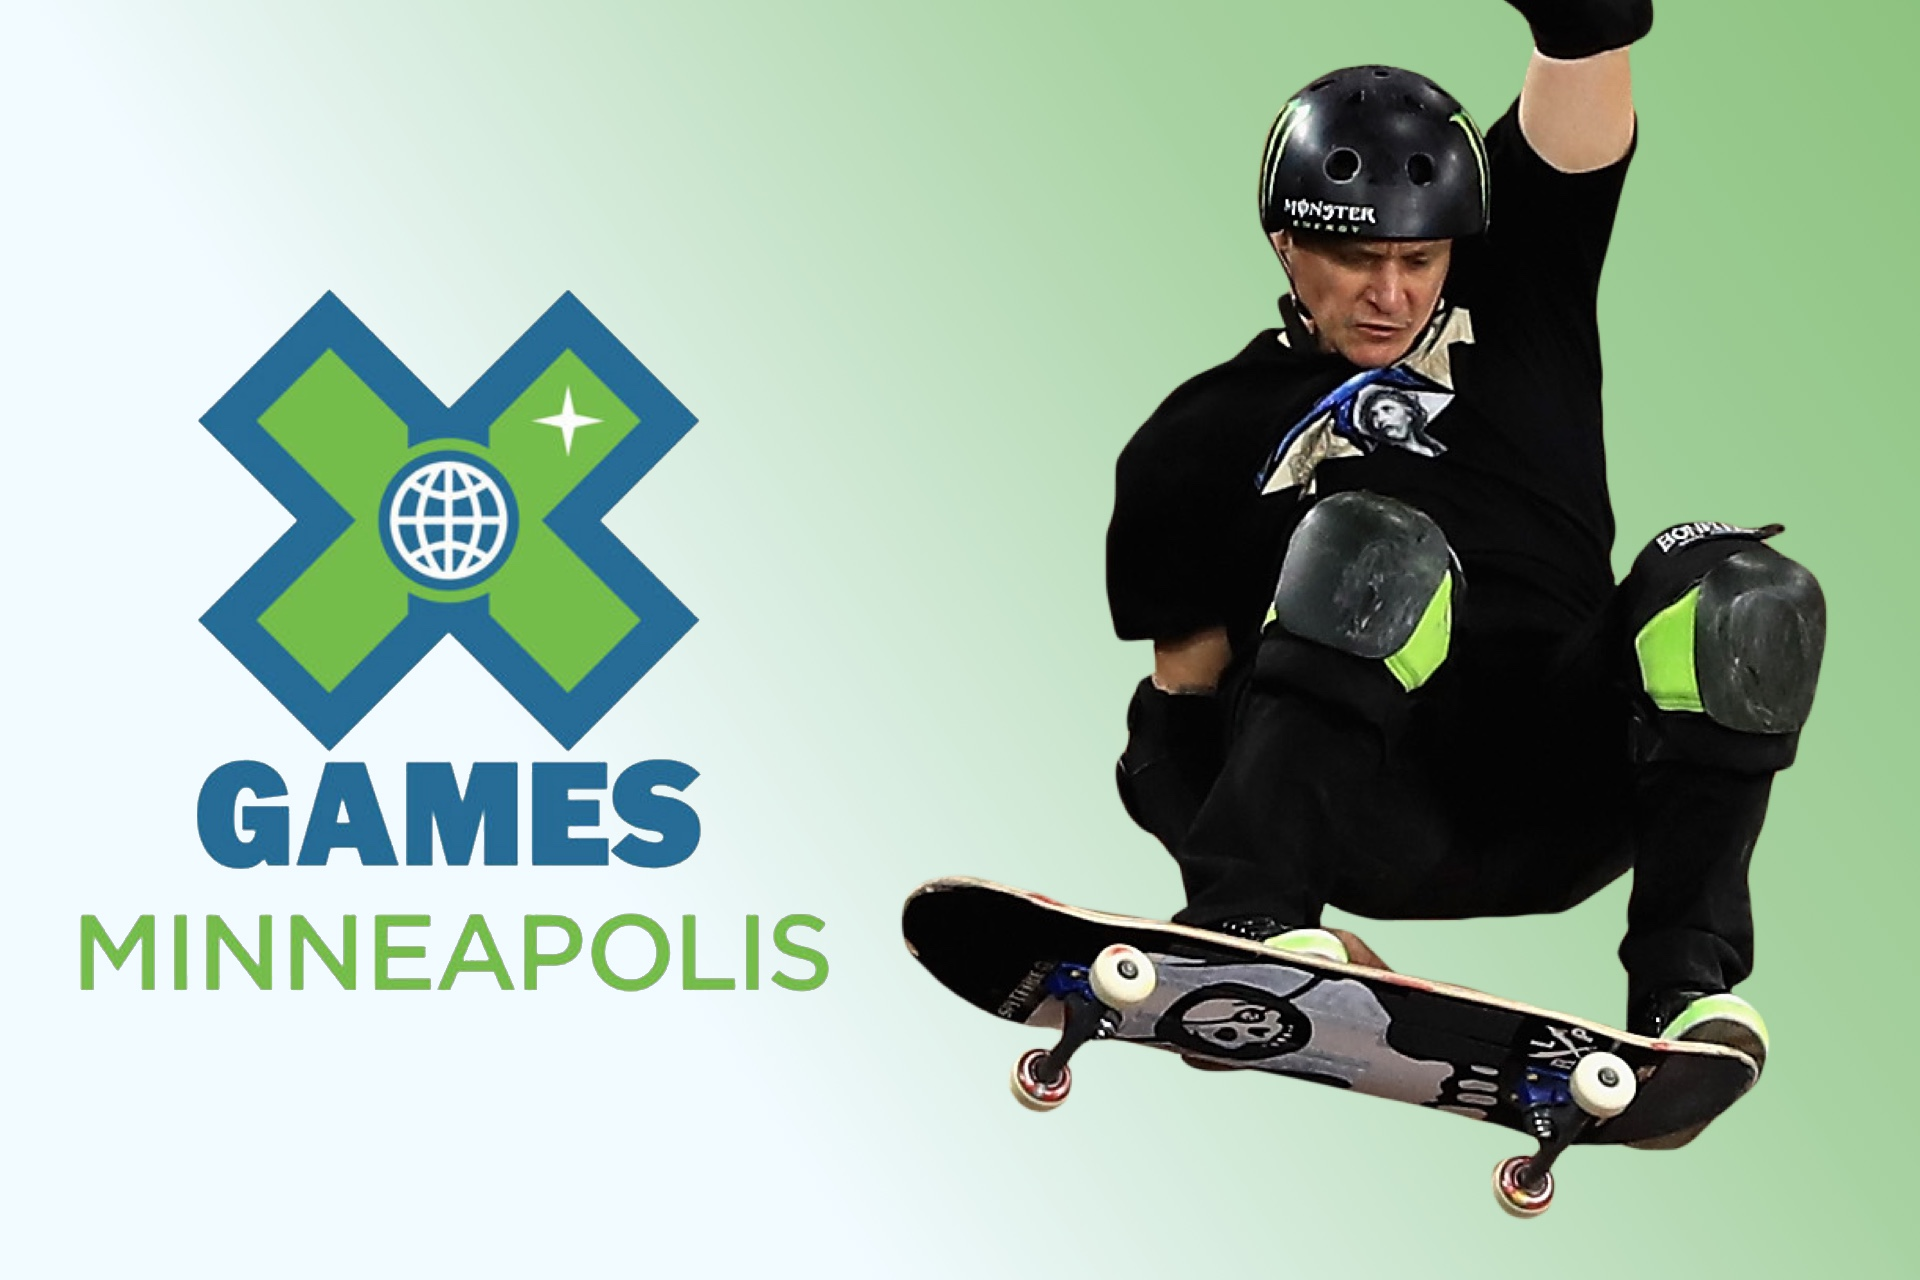 X_Games_Minneapolis_Jake_Brown.jpg